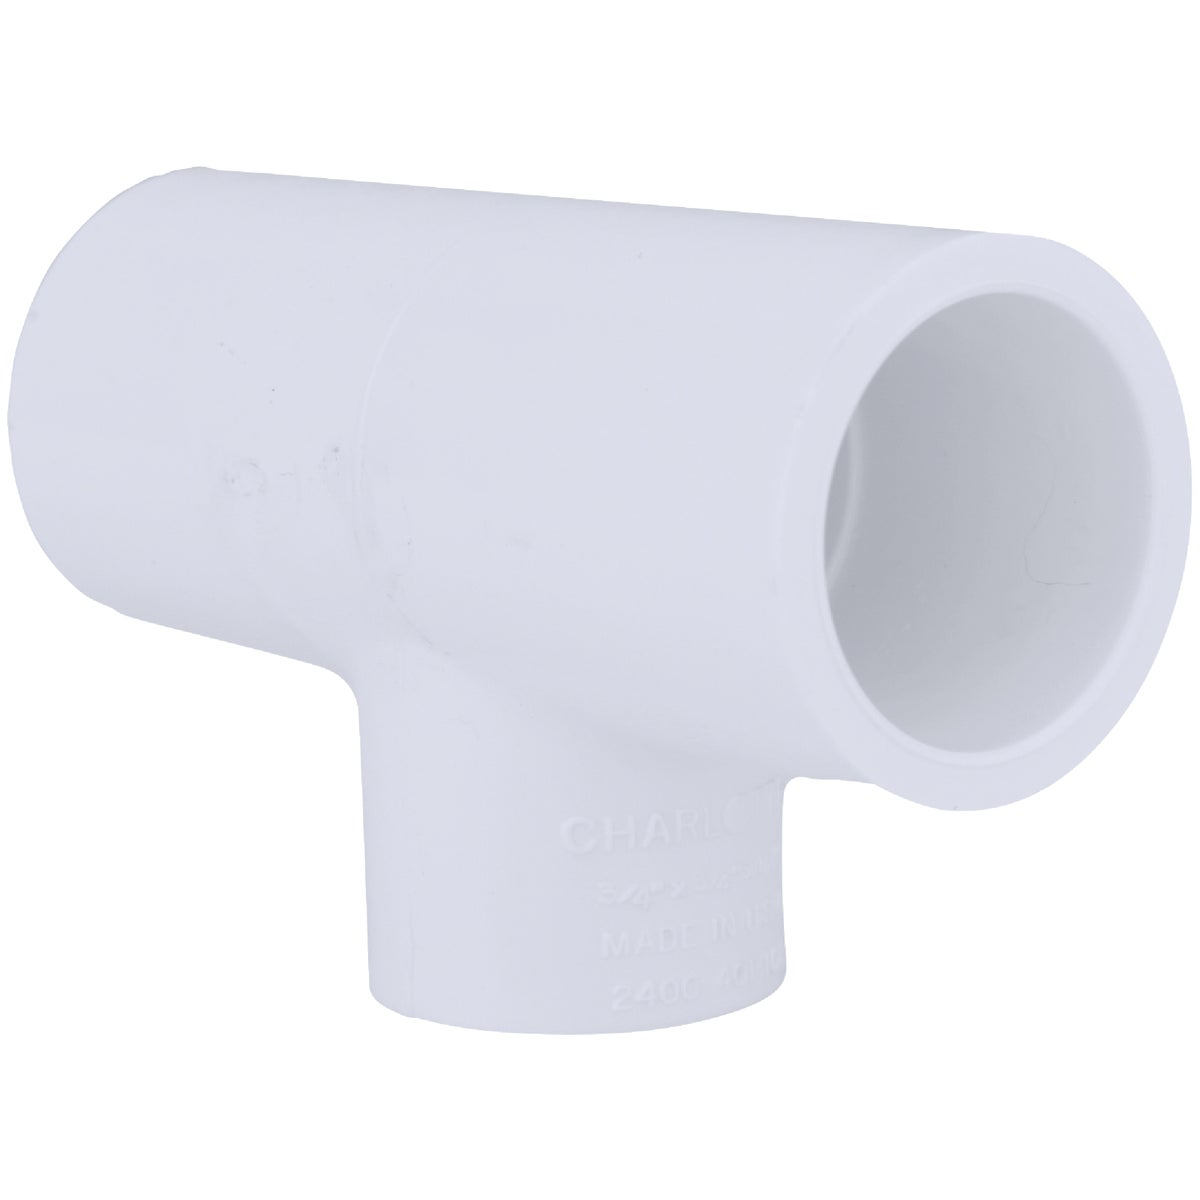 "3/4""X1/2"" SCH40 PVC TEE - 31471 by Genova Inc"